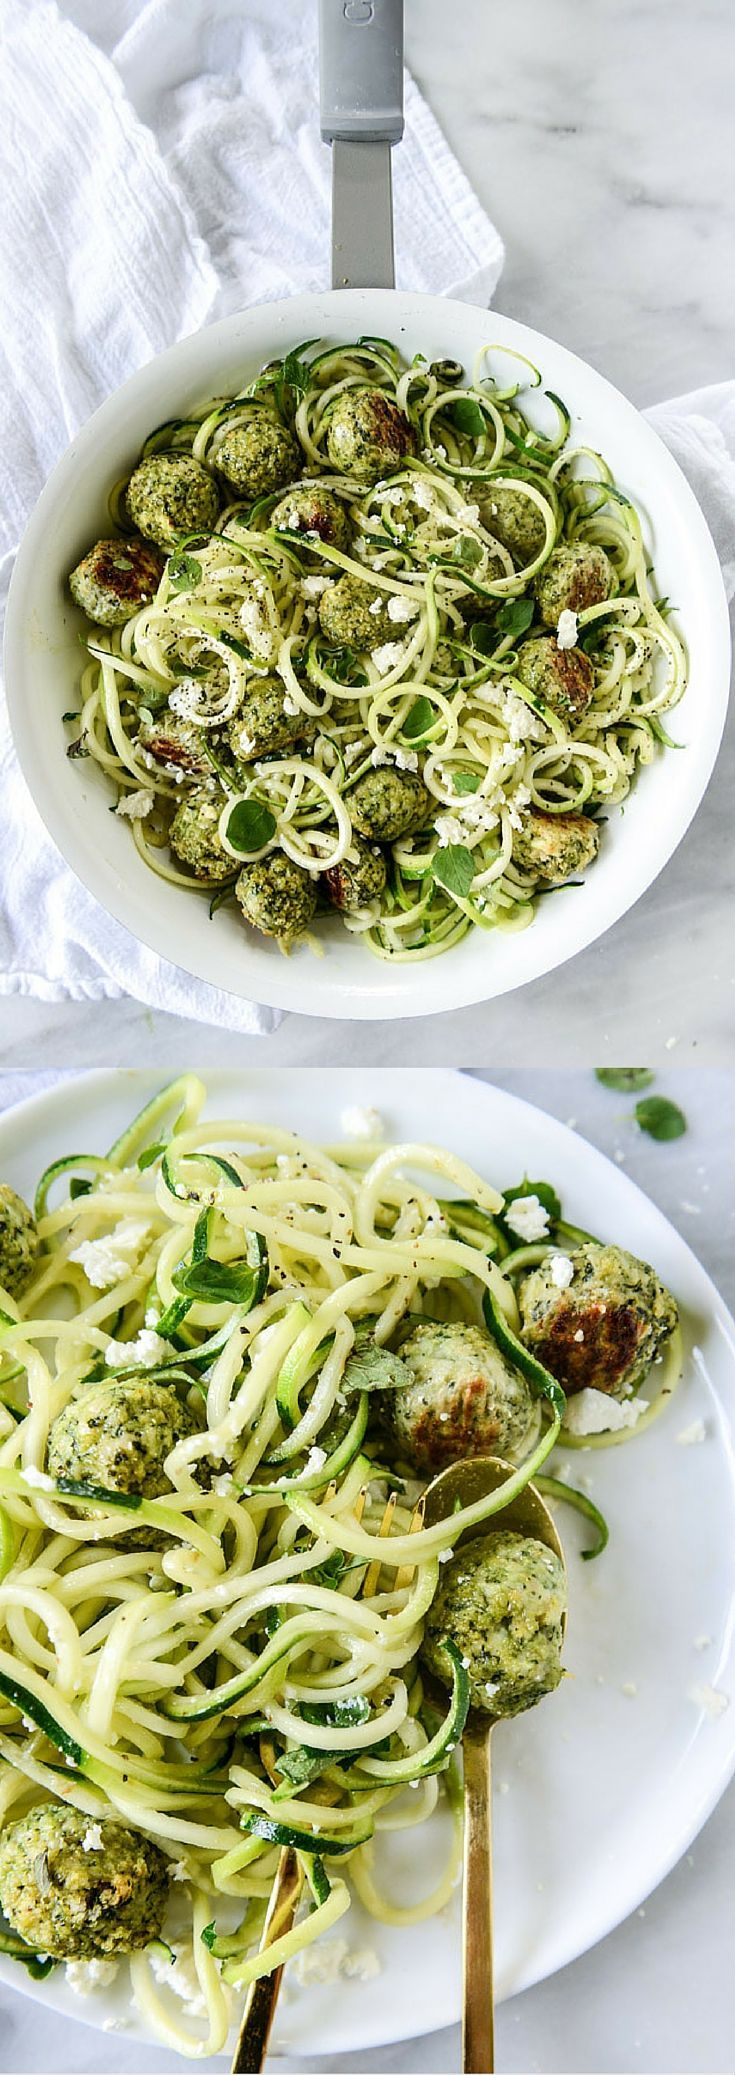 Zucchini Noodles with Chicken, Feta and Spinach Meatballs by /howsweeteats/ I http://howsweeteats.com